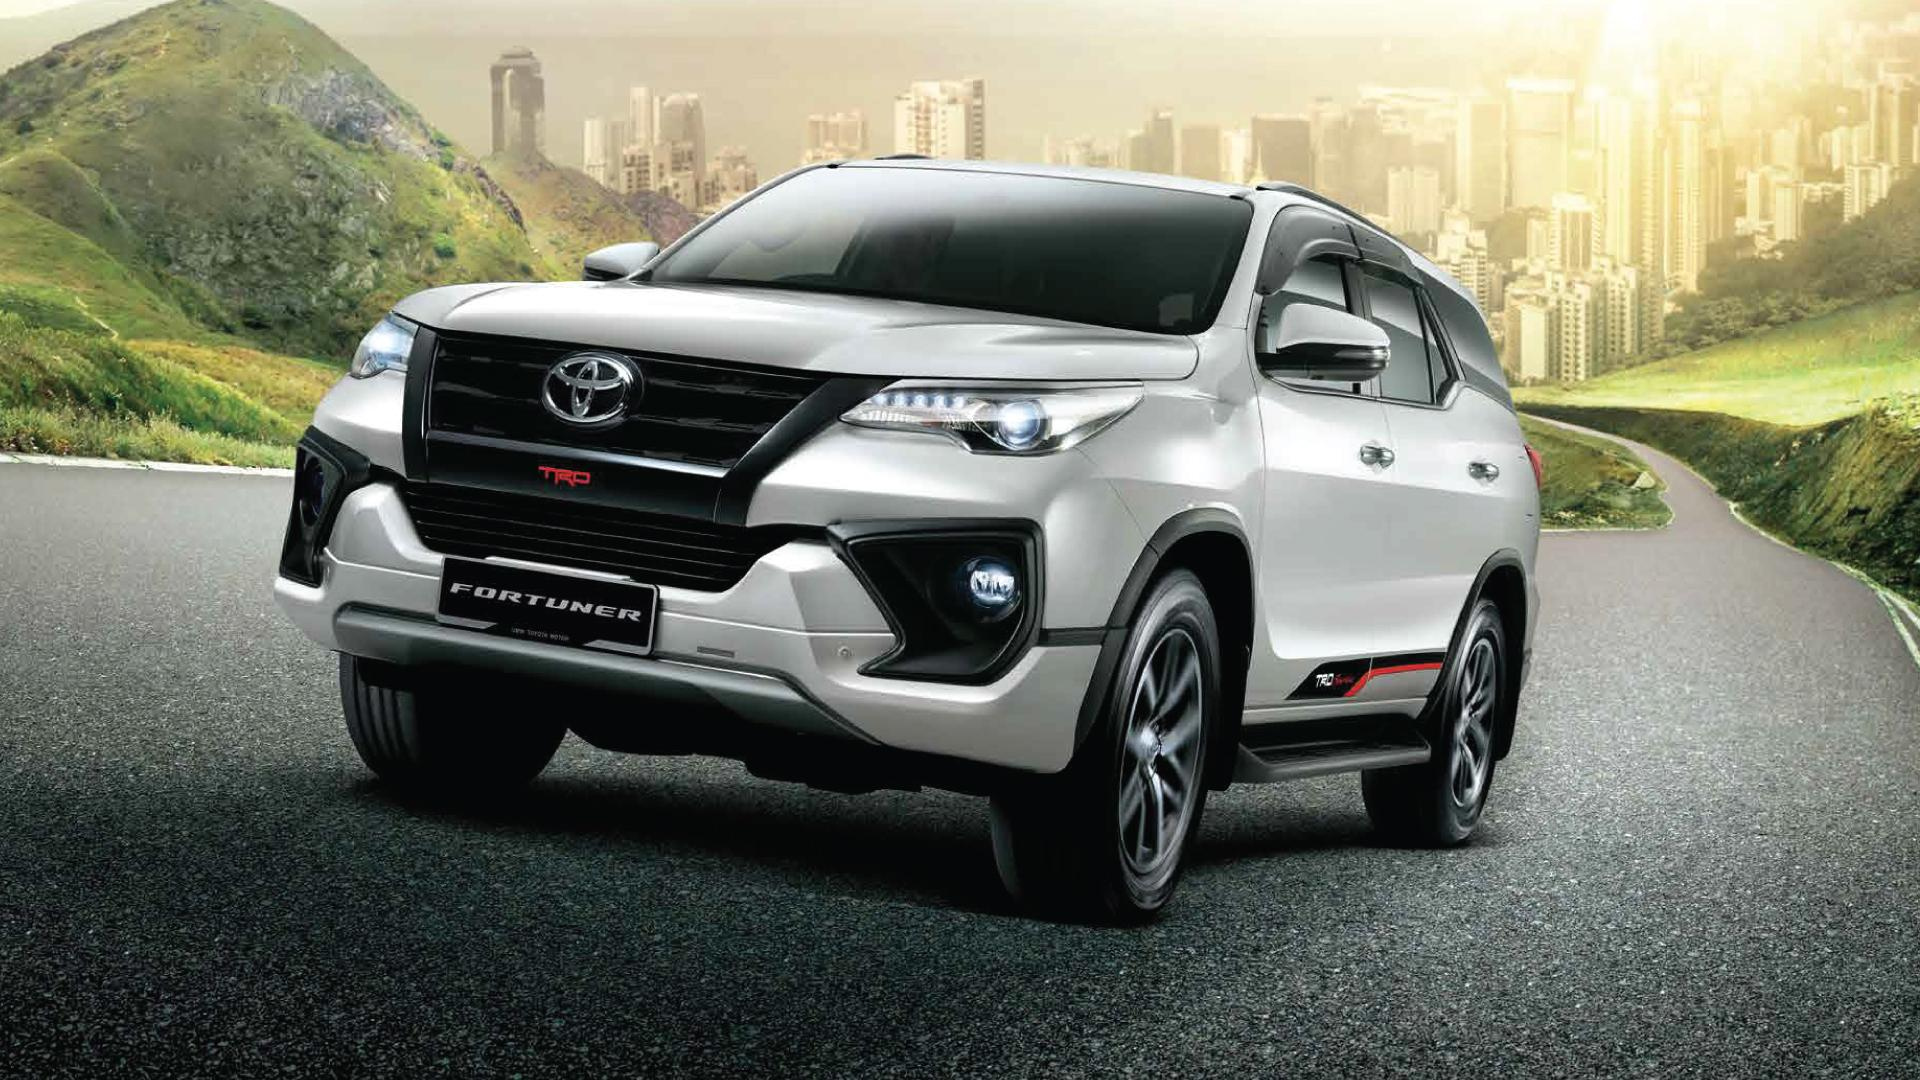 Toyota Fortuner Hd Wallpaper   Toyota Fortuner 2019 Malaysia Hd 1920x1080